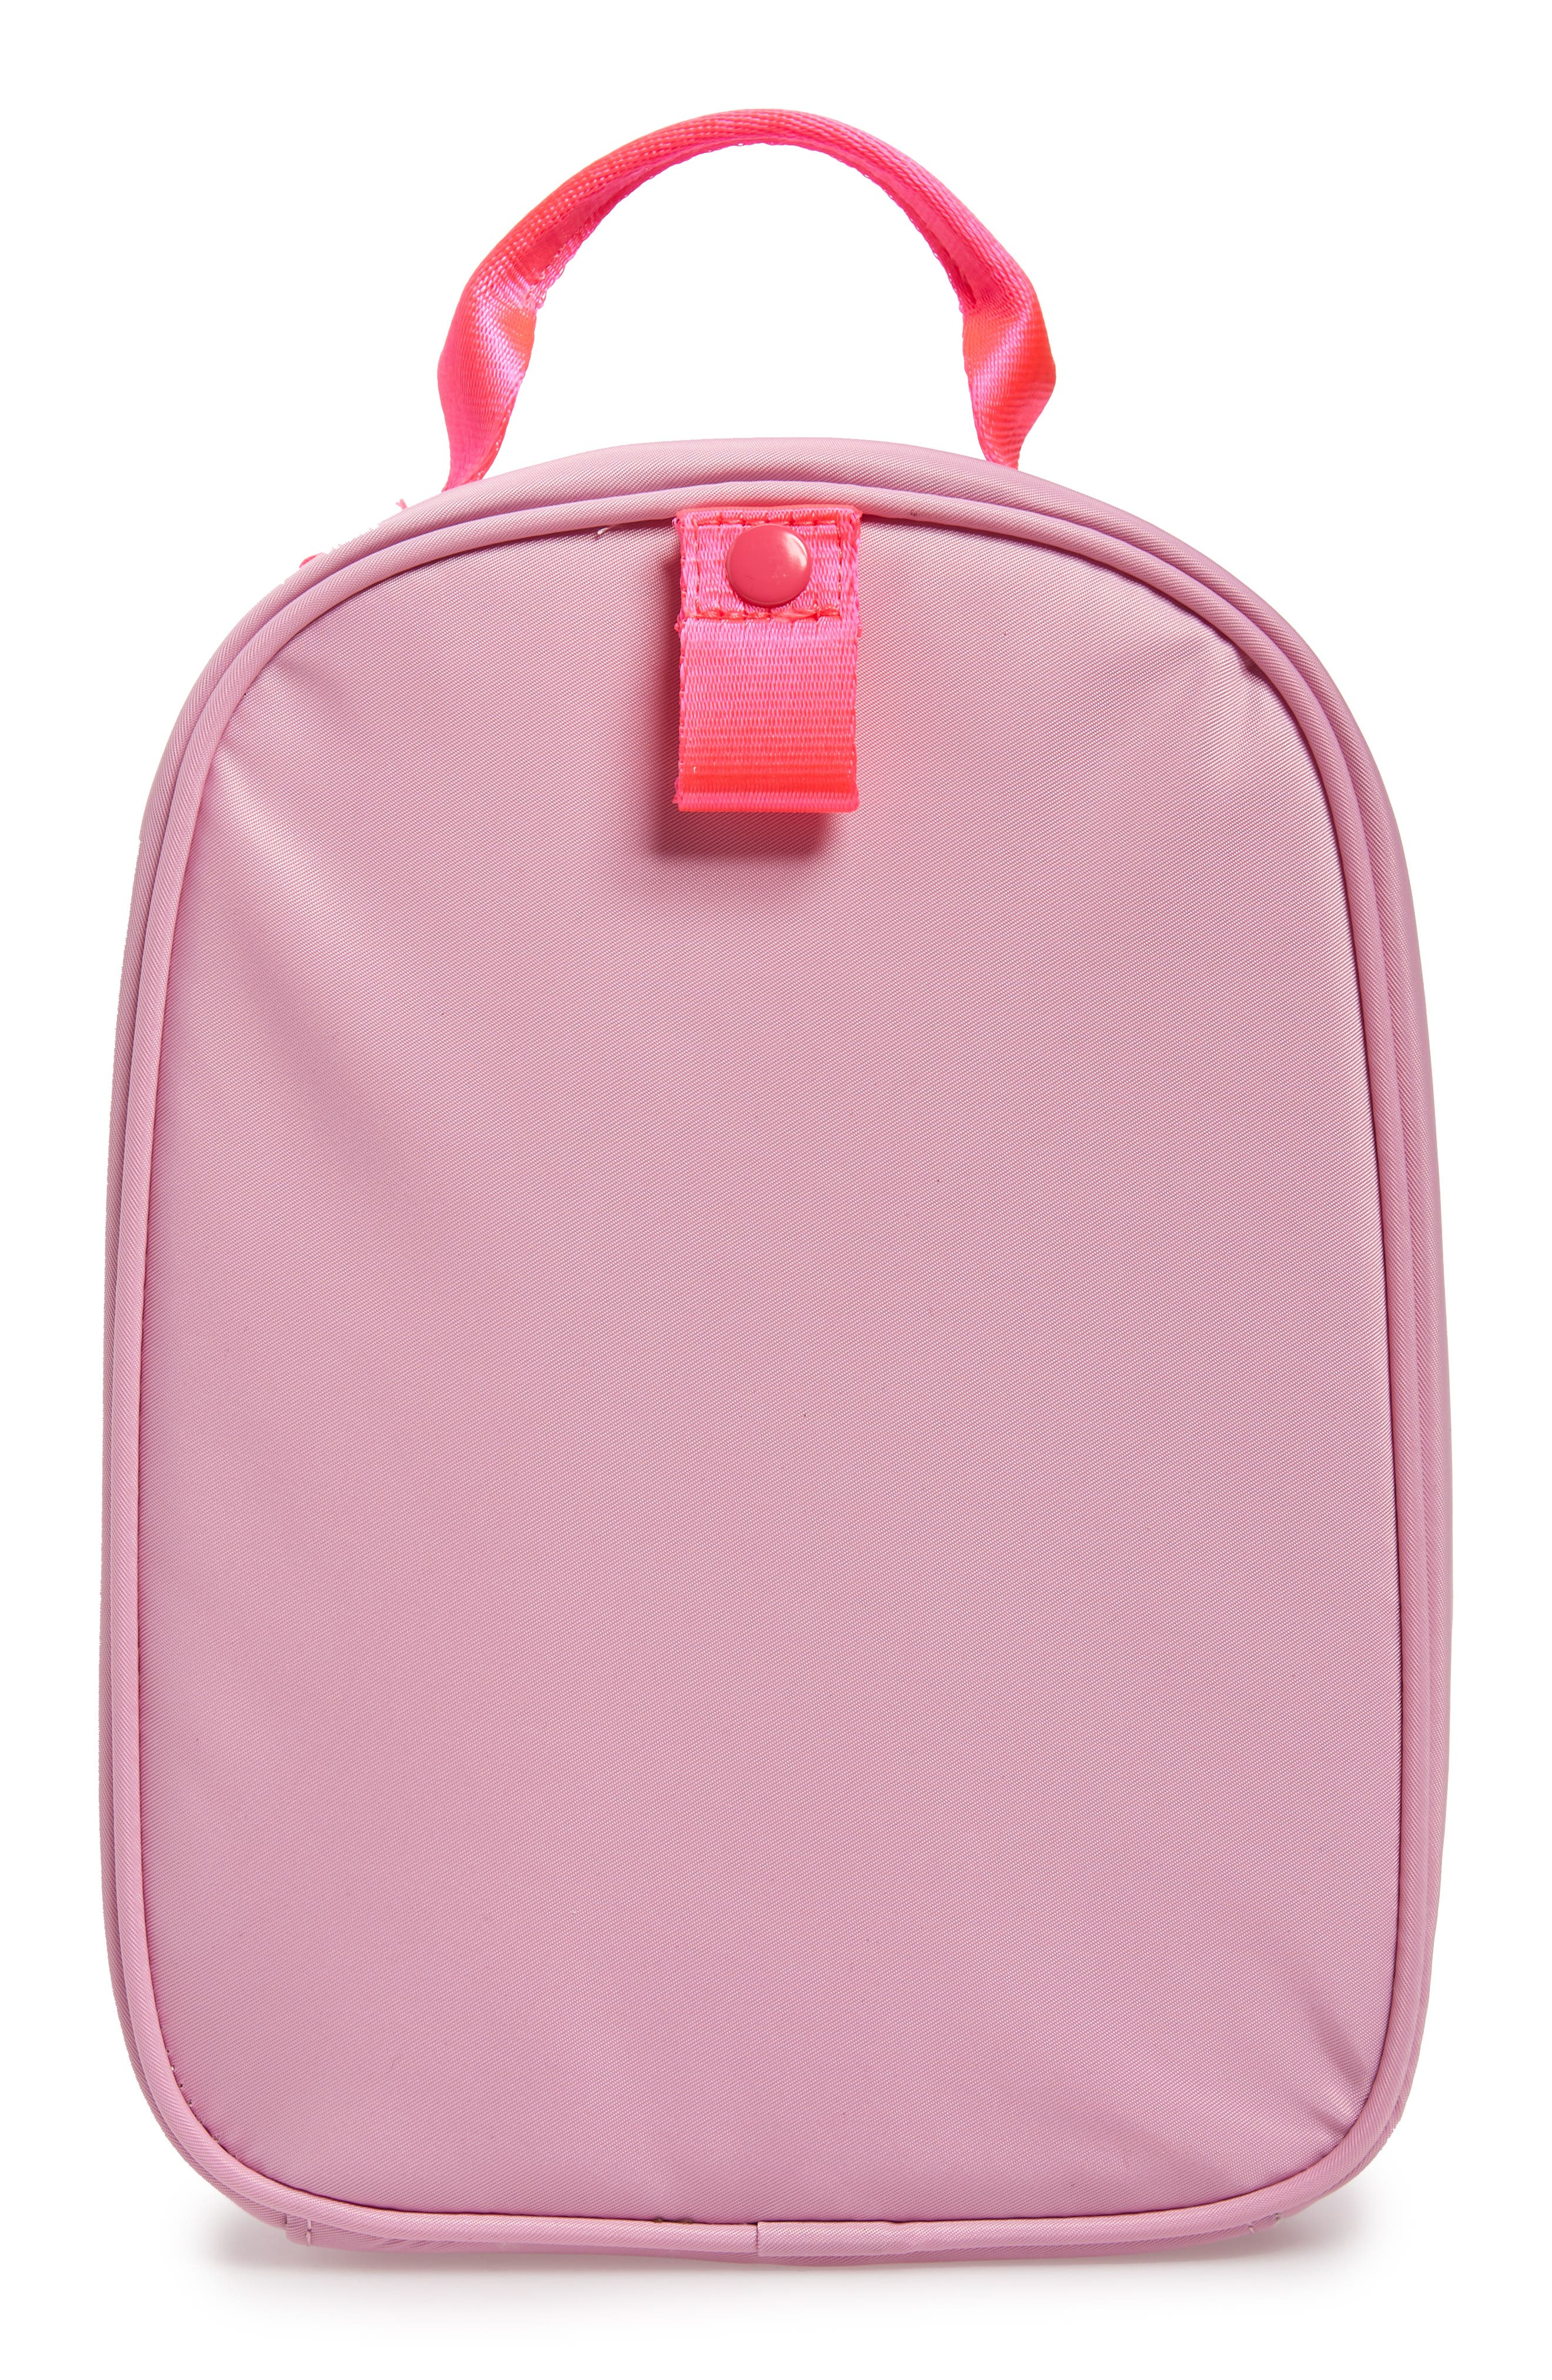 Peekaboo Cat Insulated Lunch Box,                             Alternate thumbnail 2, color,                             650